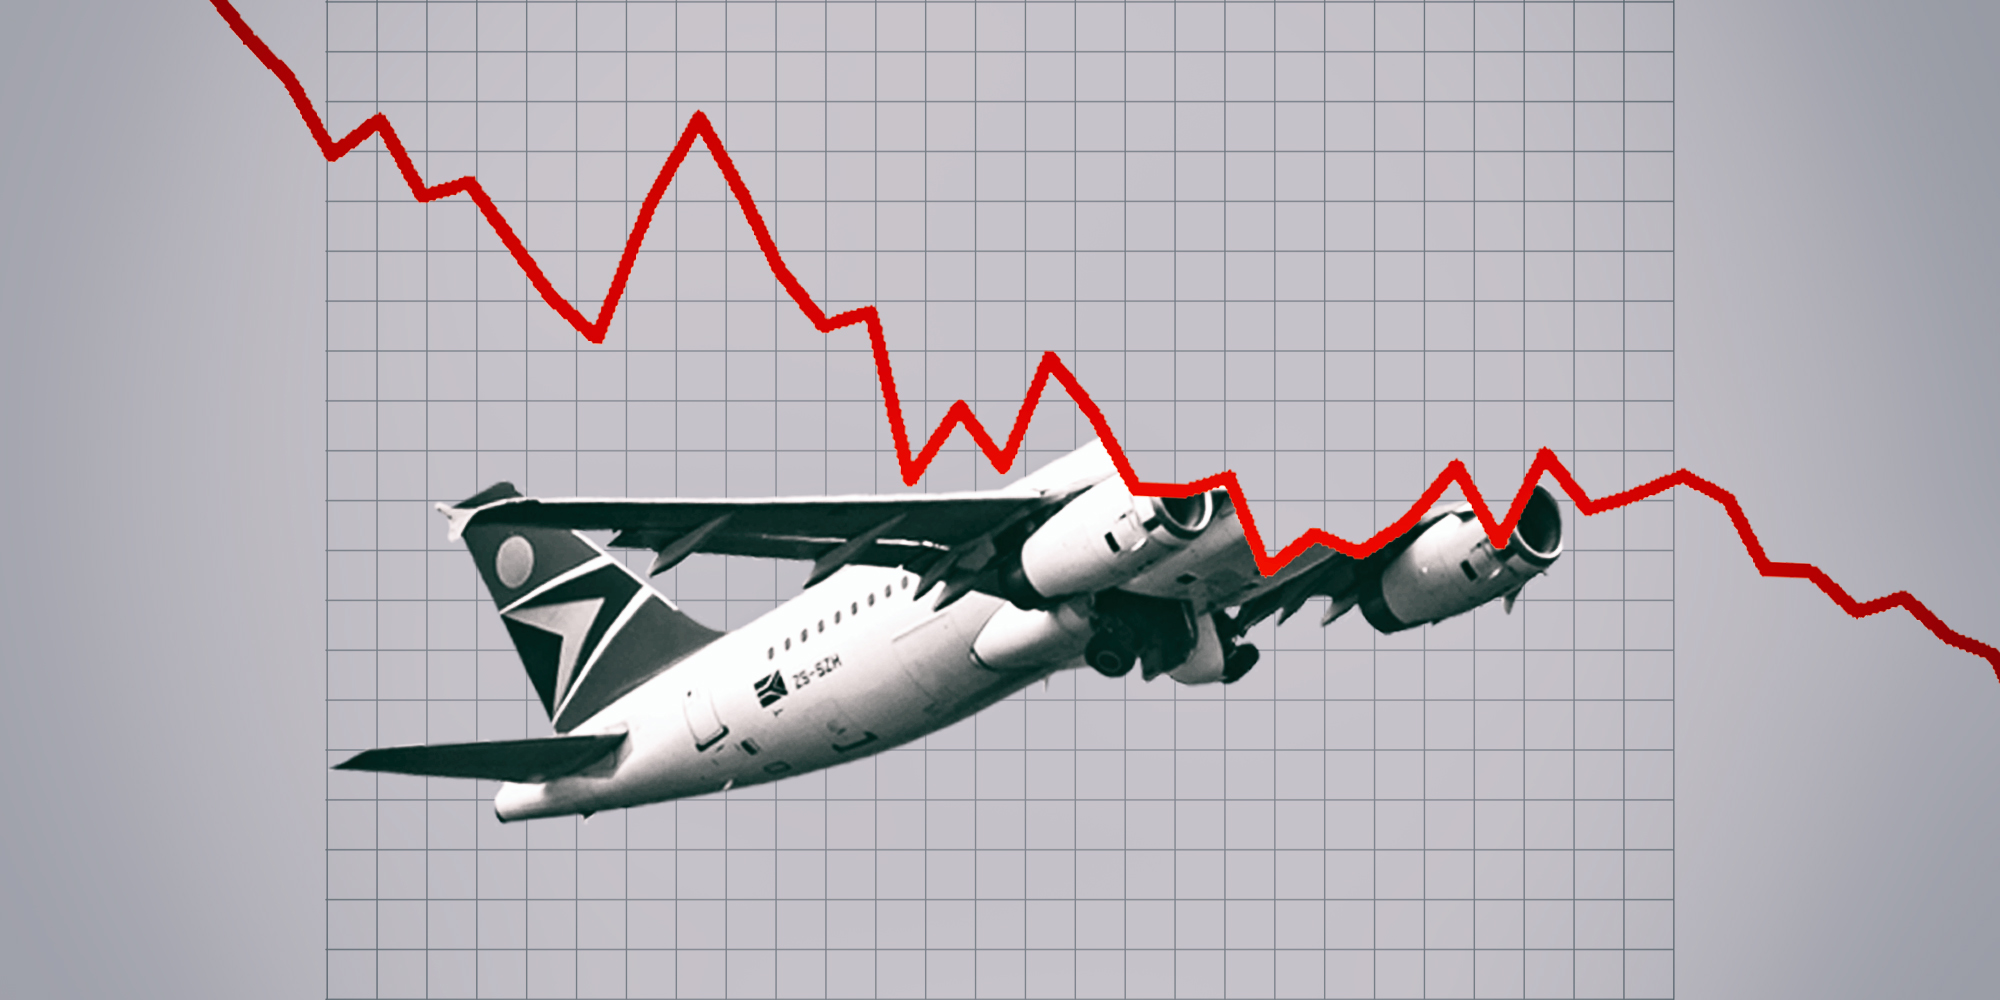 SAA's airline operations suspended as funding dries up - Daily Maverick